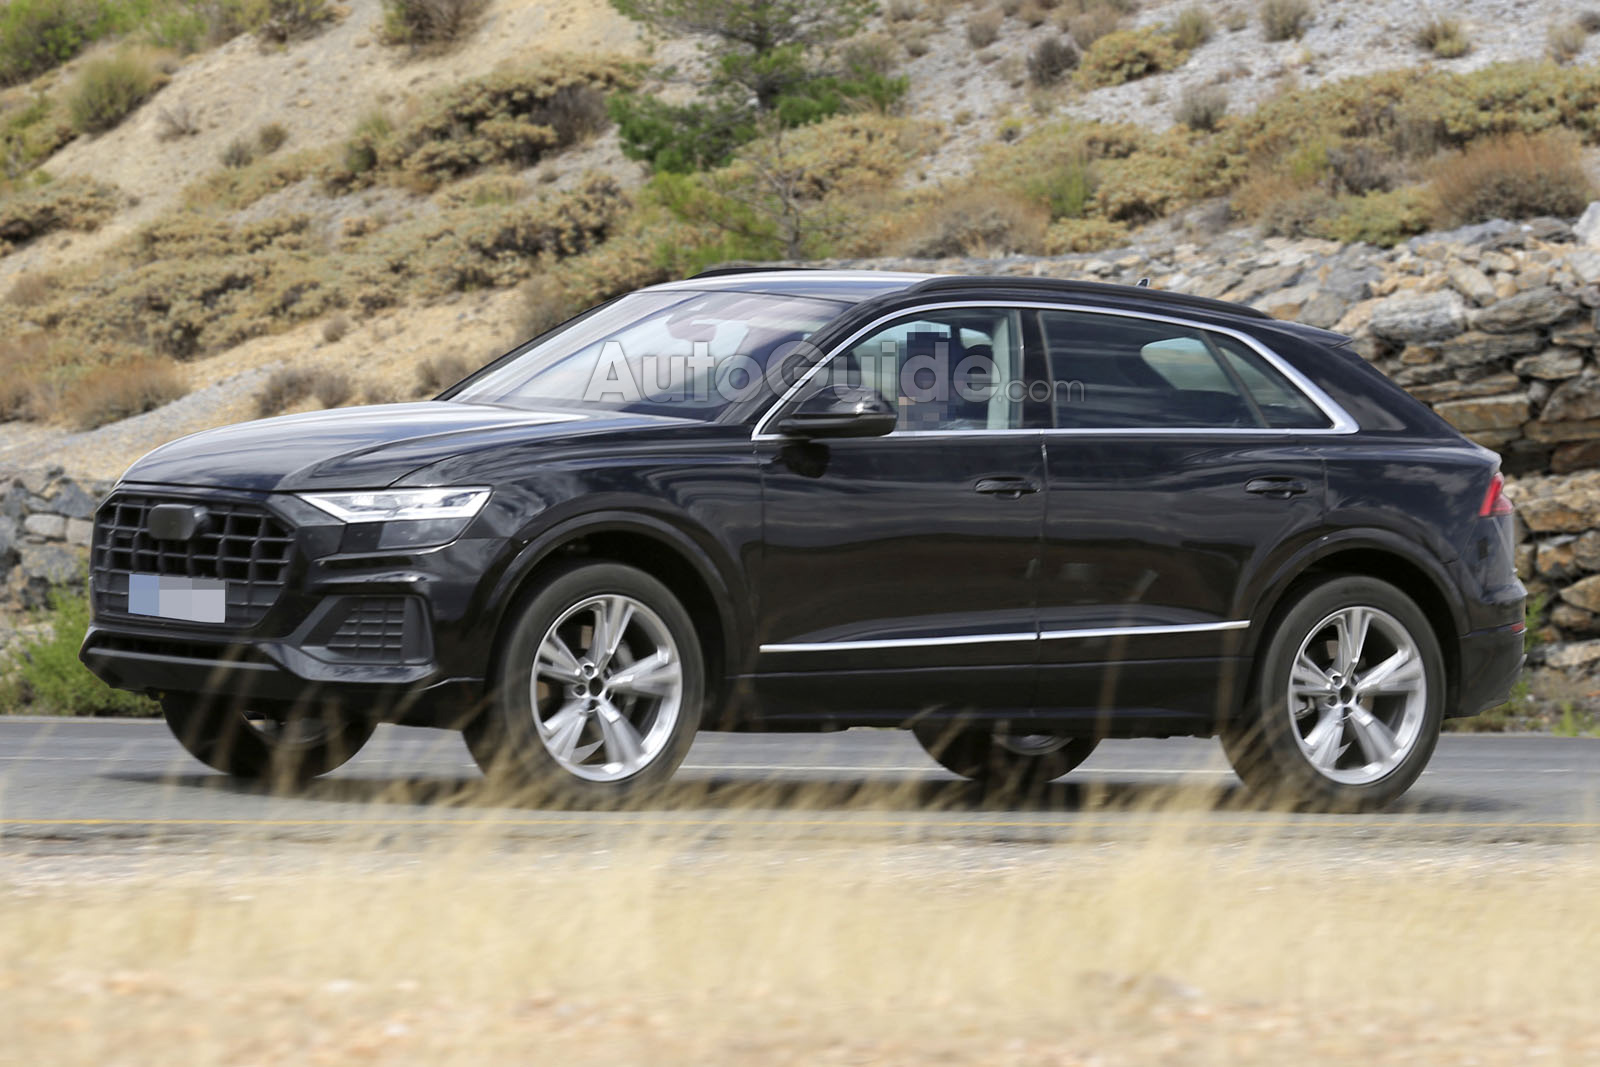 2019 Audi Q8 Spied Fully Exposed » AutoGuide.com News